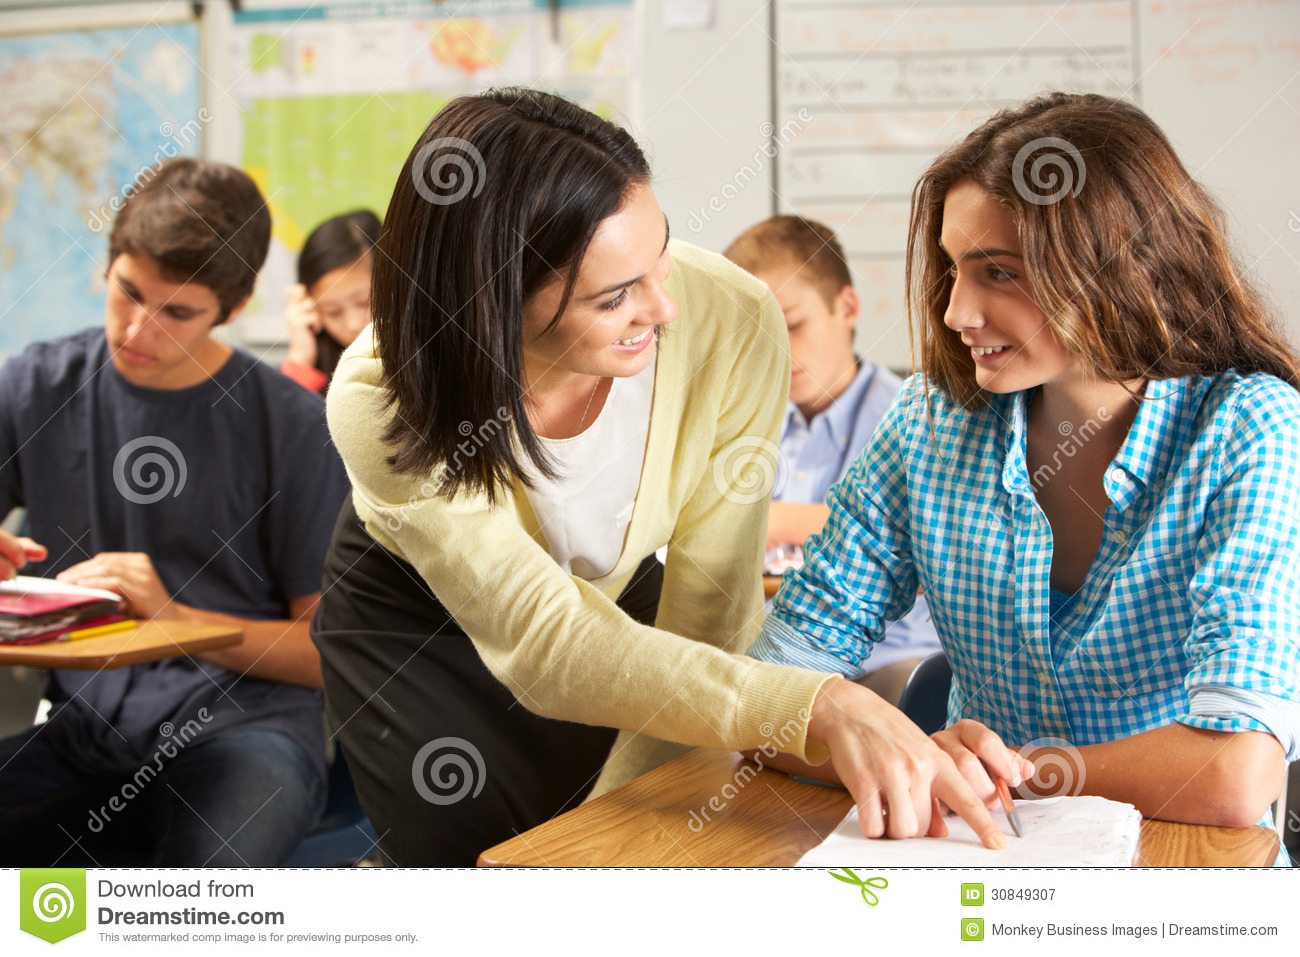 teachers in class fucking each other